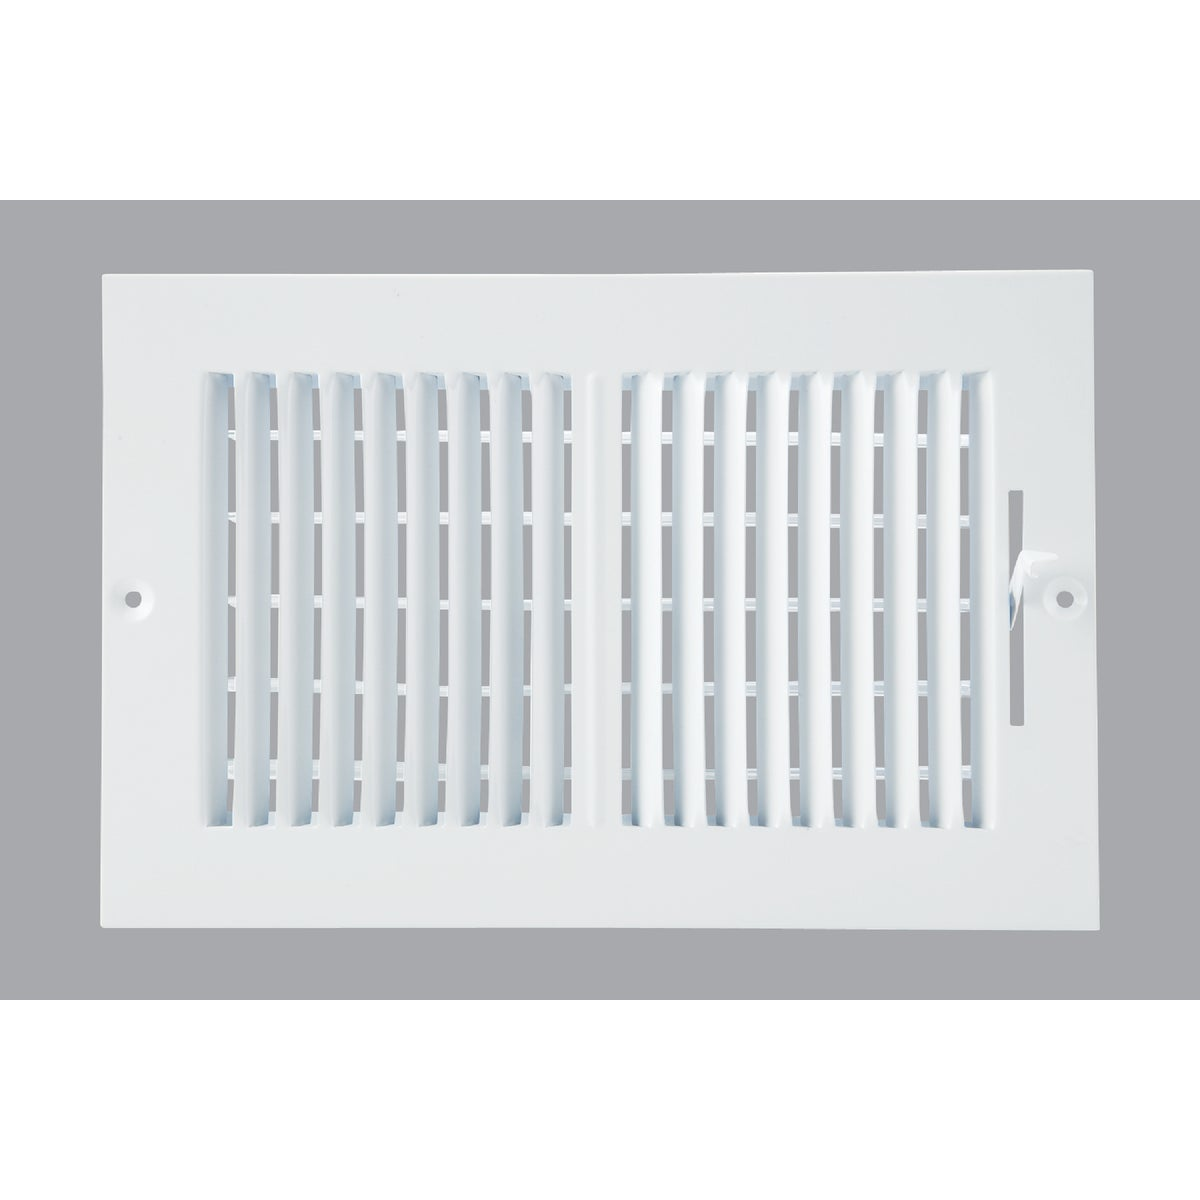 6X10 WHT WALL REGISTER - 2SW1006WH-B by Do it Best